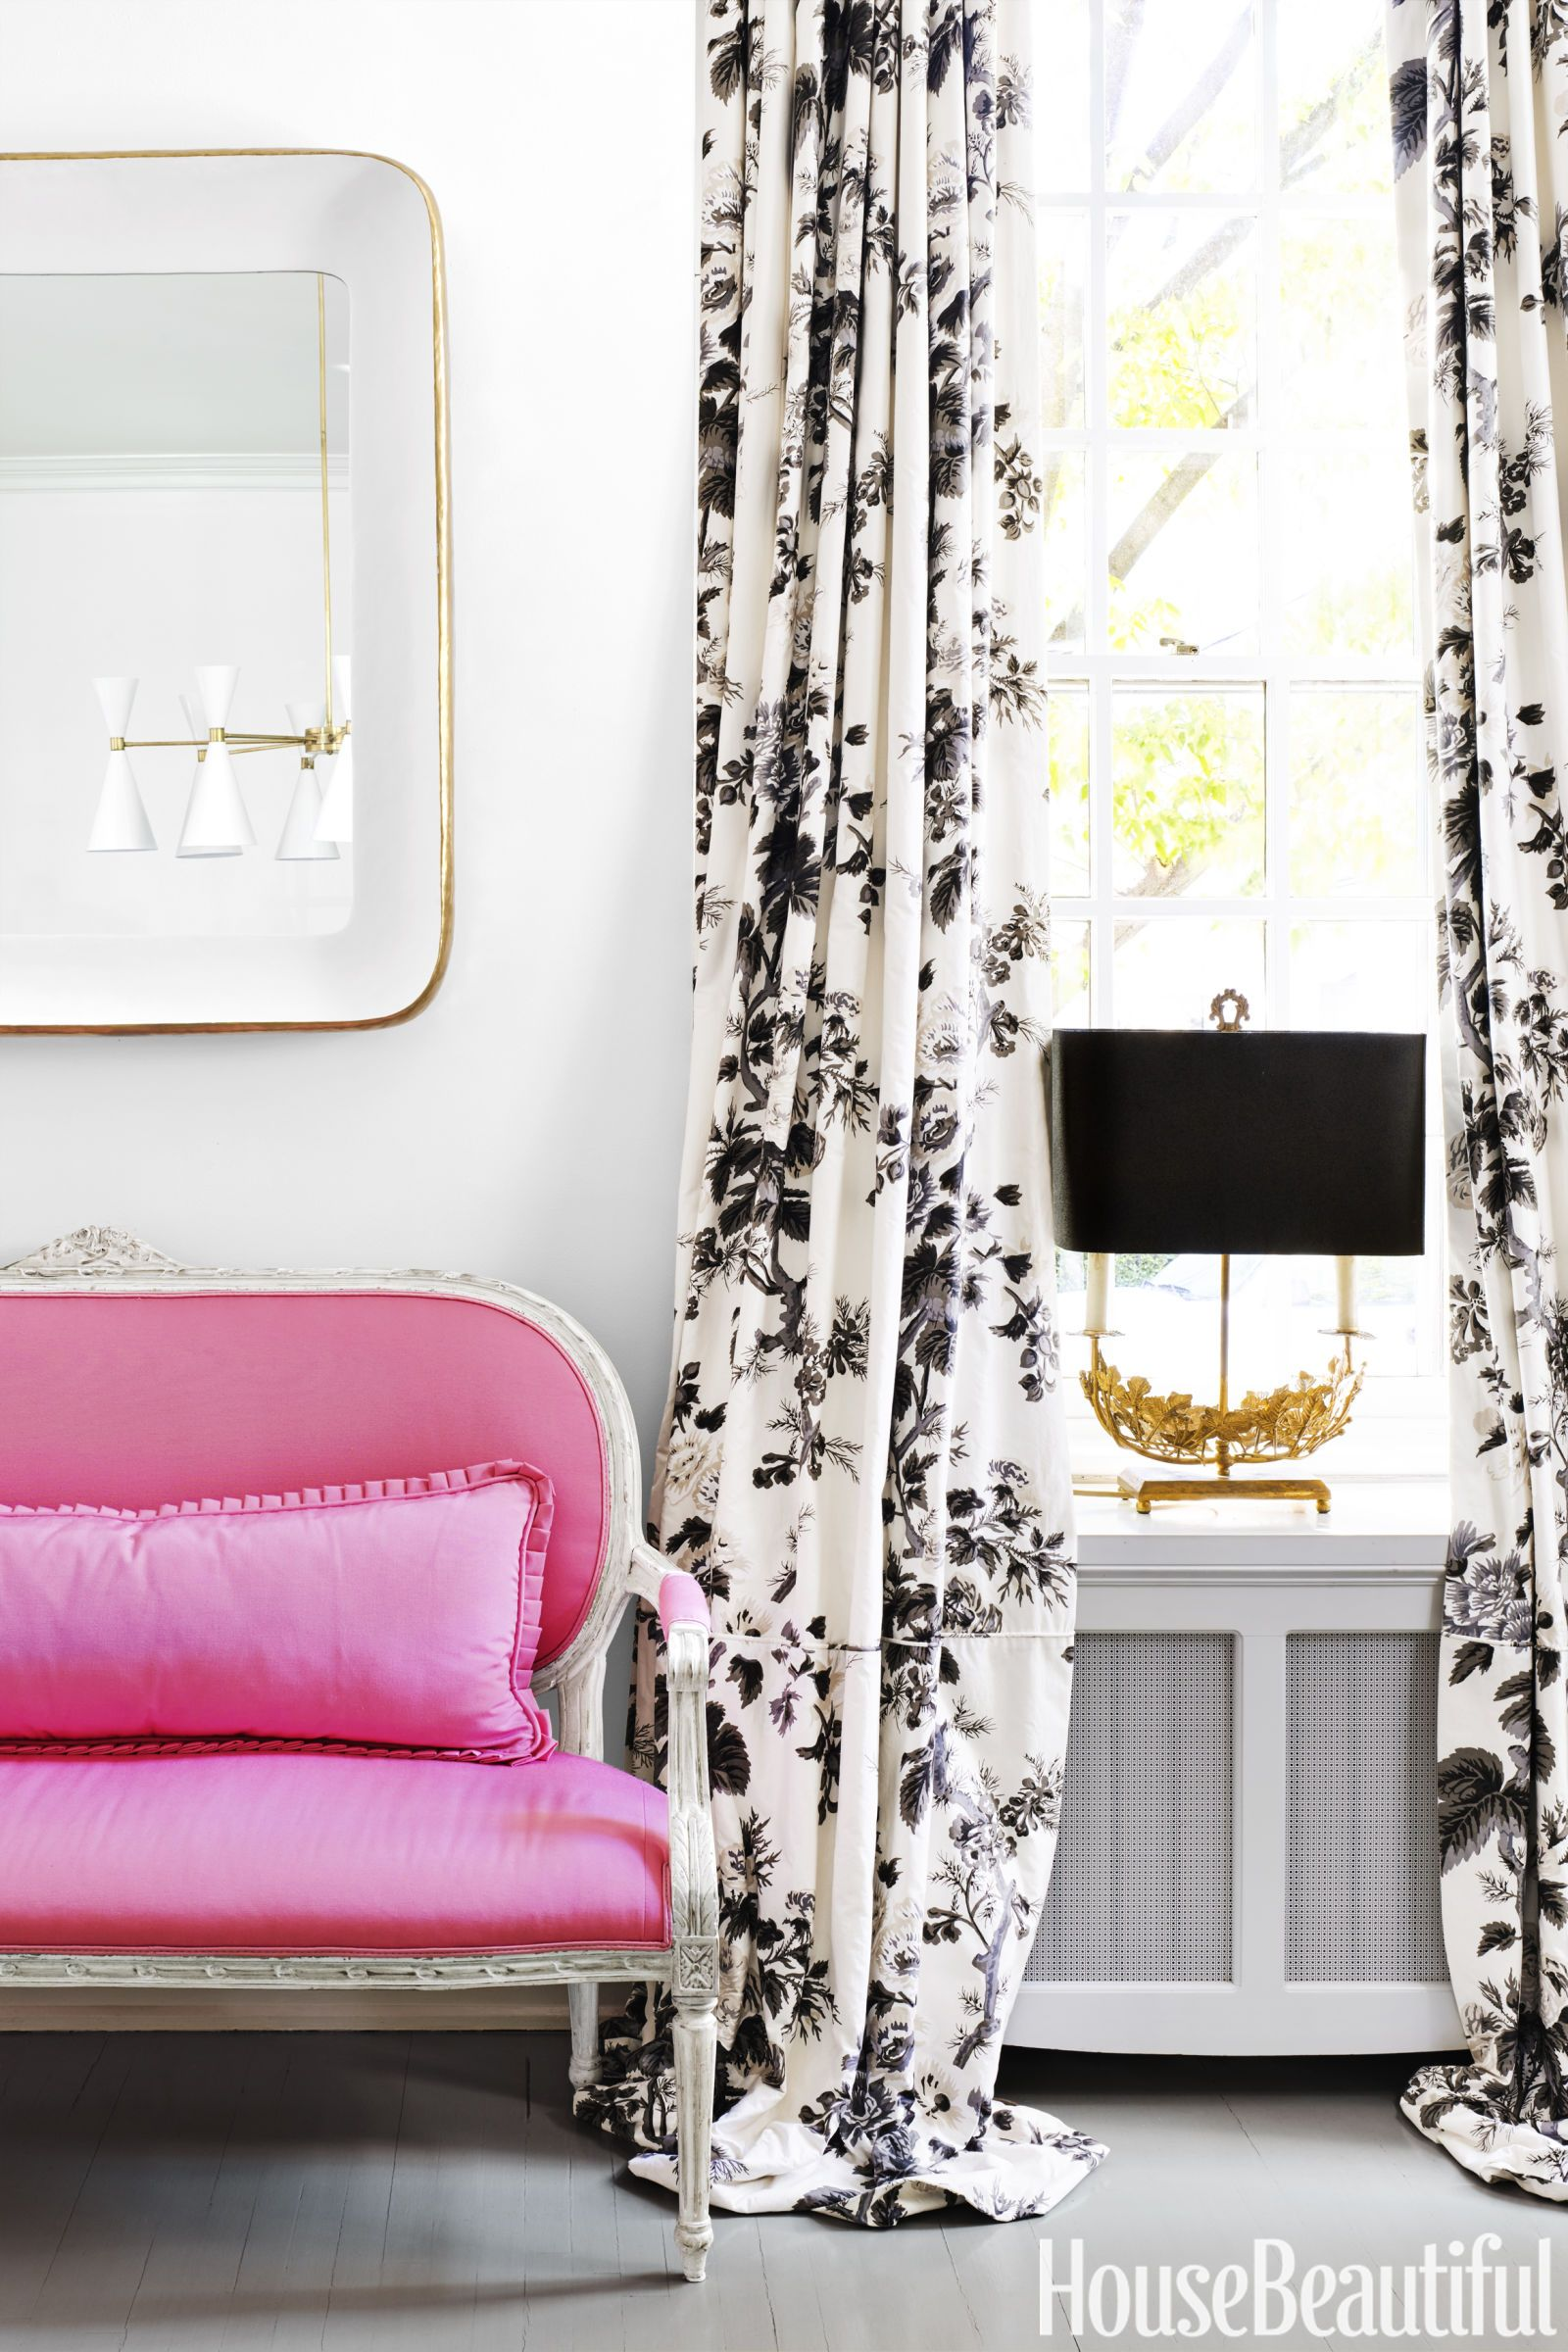 Dining Room Curtains In Schumacher S Pine Hollyhock Print Black White Hot Pink